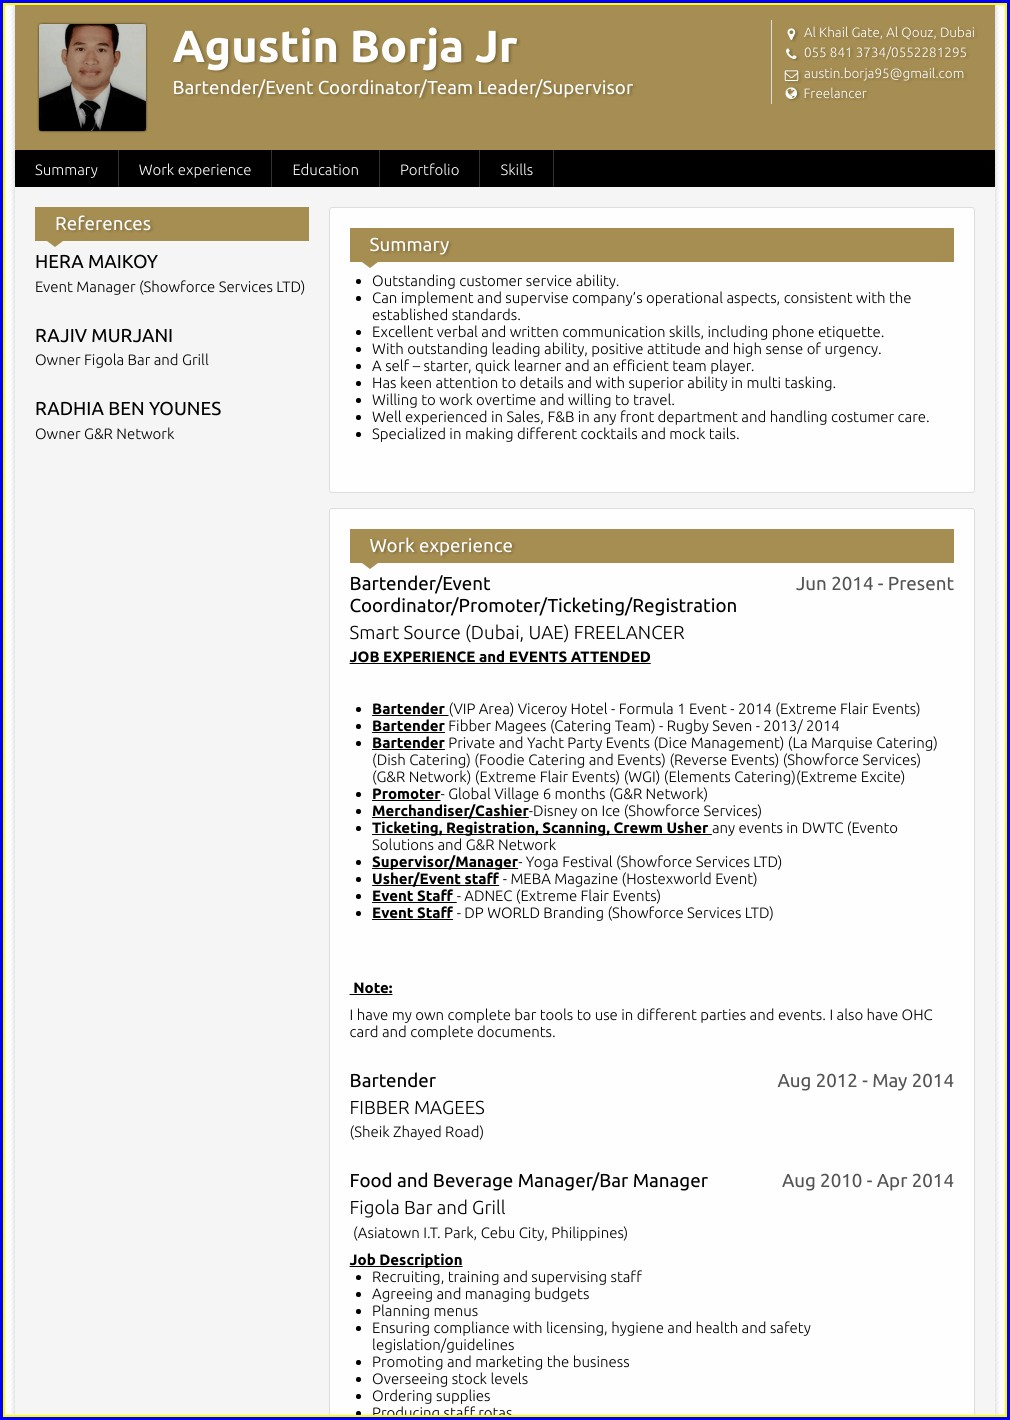 Resume Samples For Jobs In India Pdf